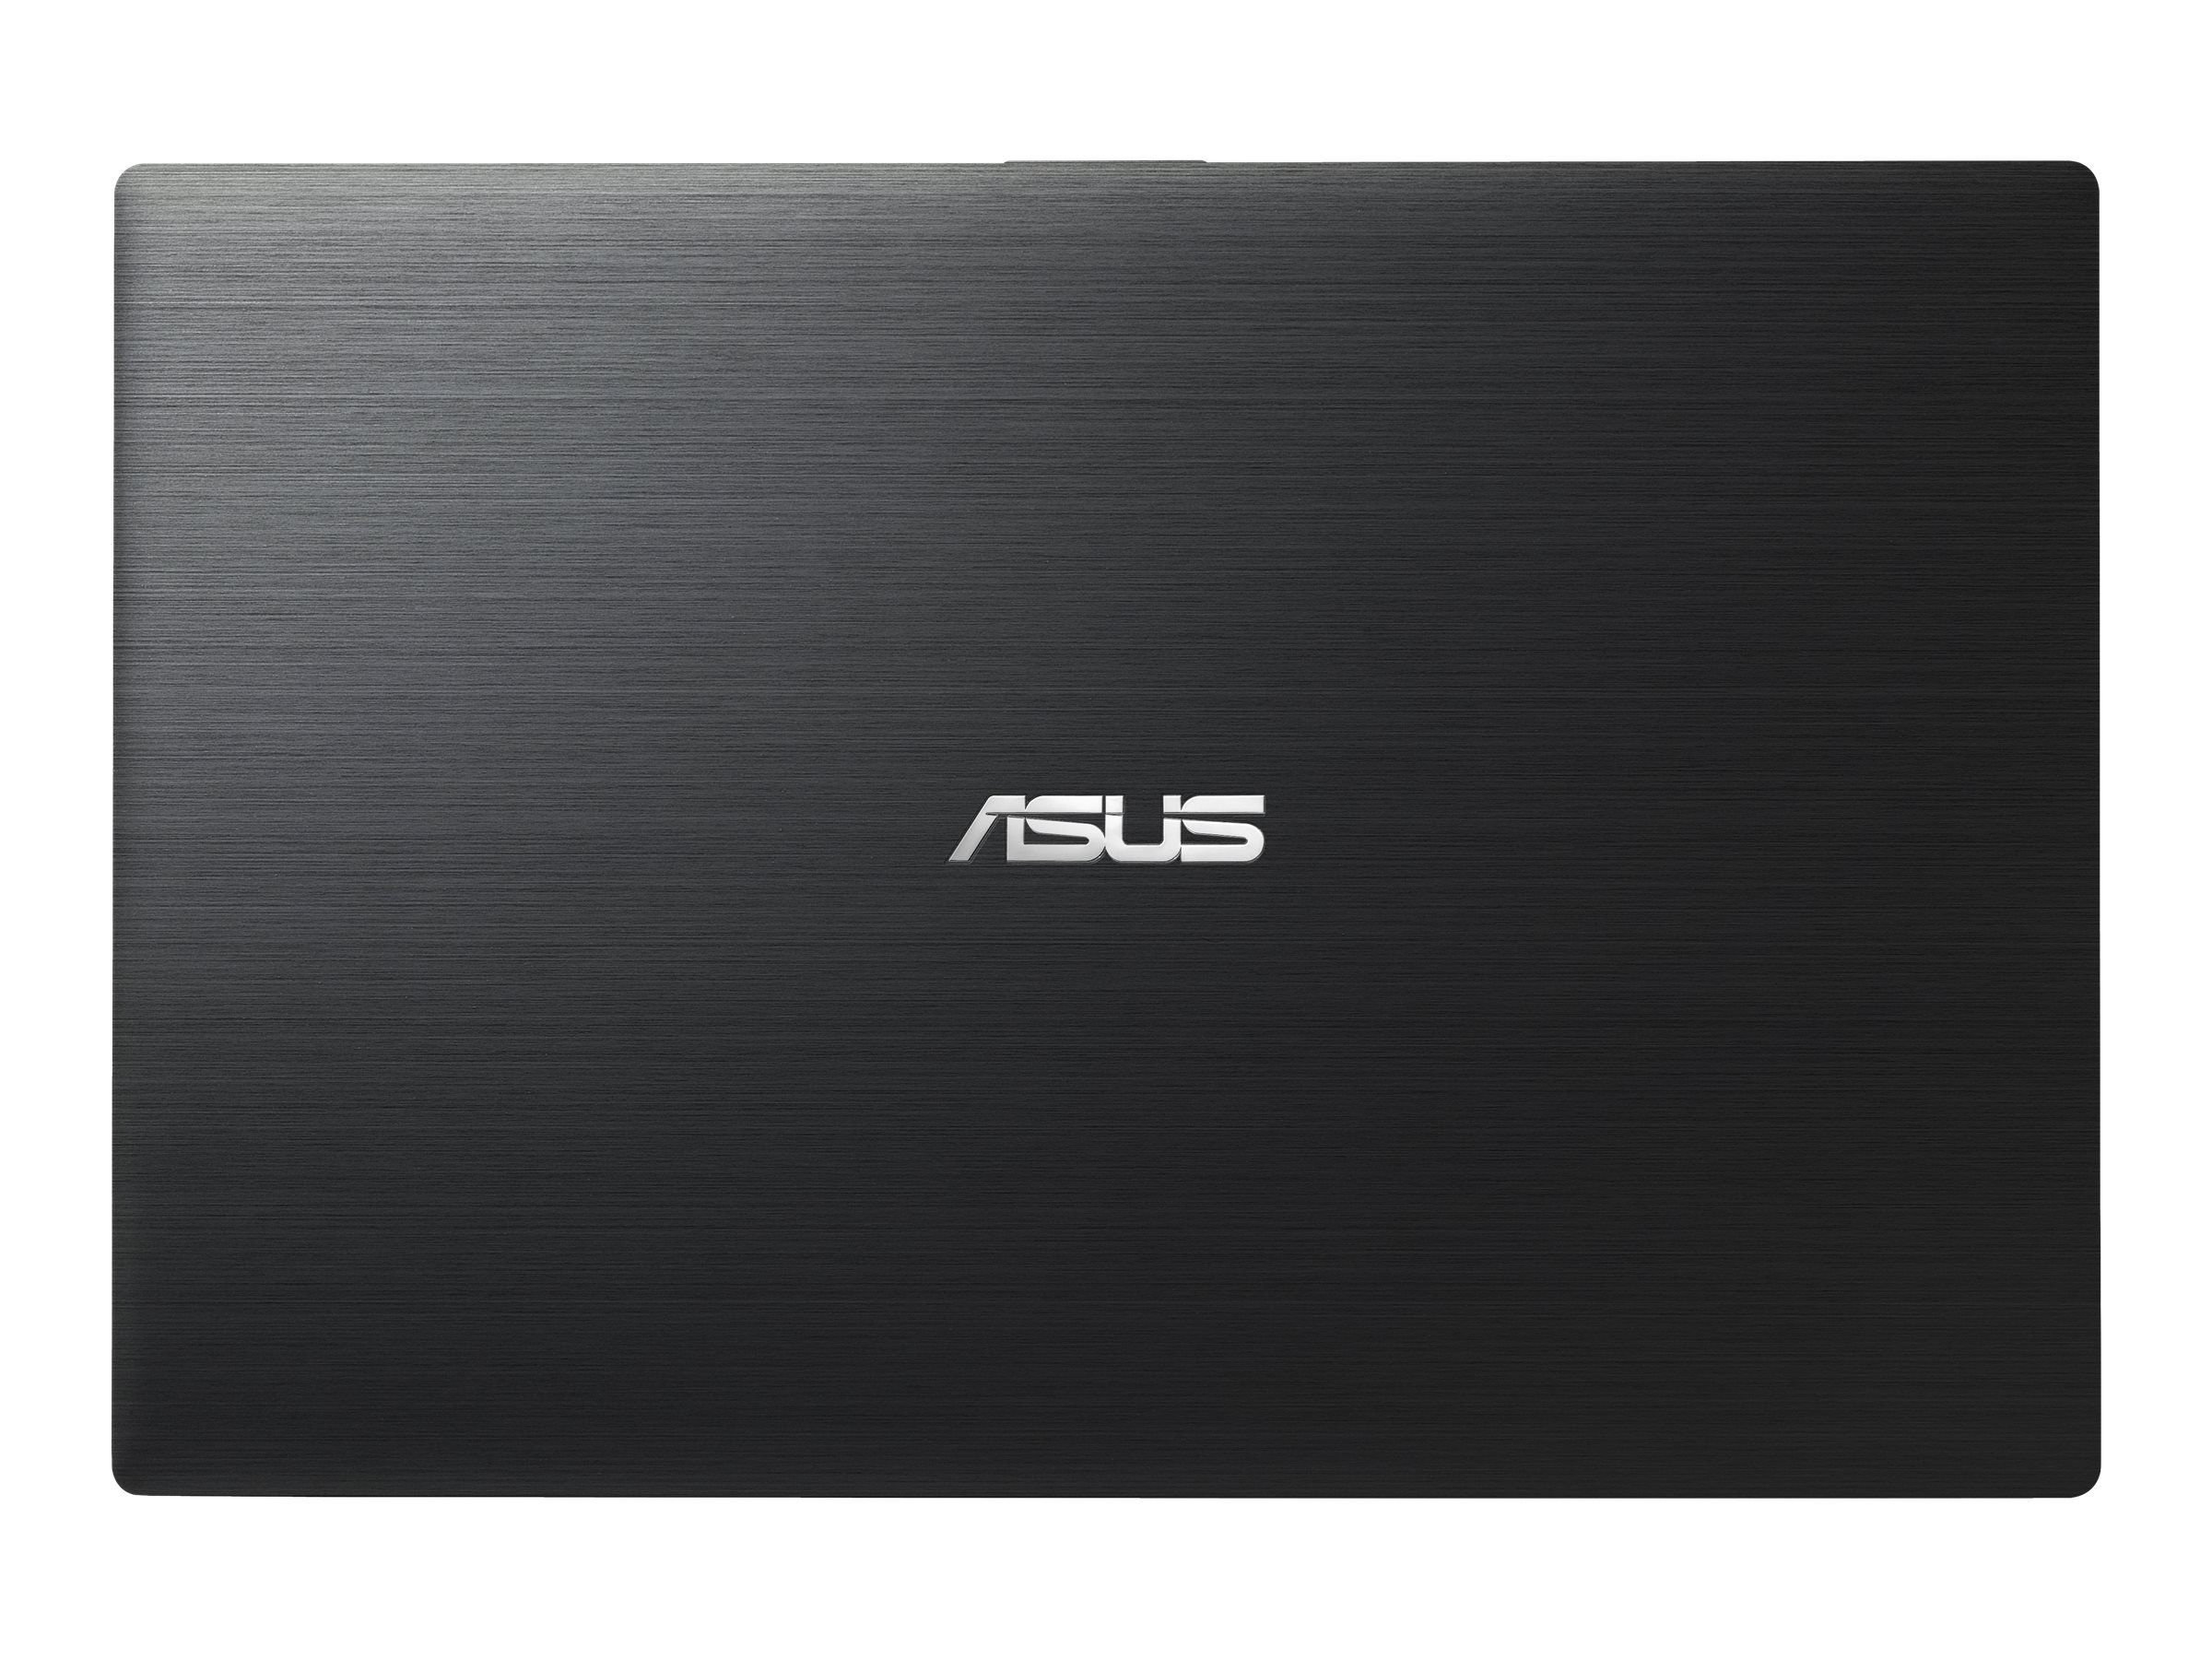 Asus Notebook PC Core i3-5005U 4GB 500GB 15.6 W7P, 90NX0051-M00620